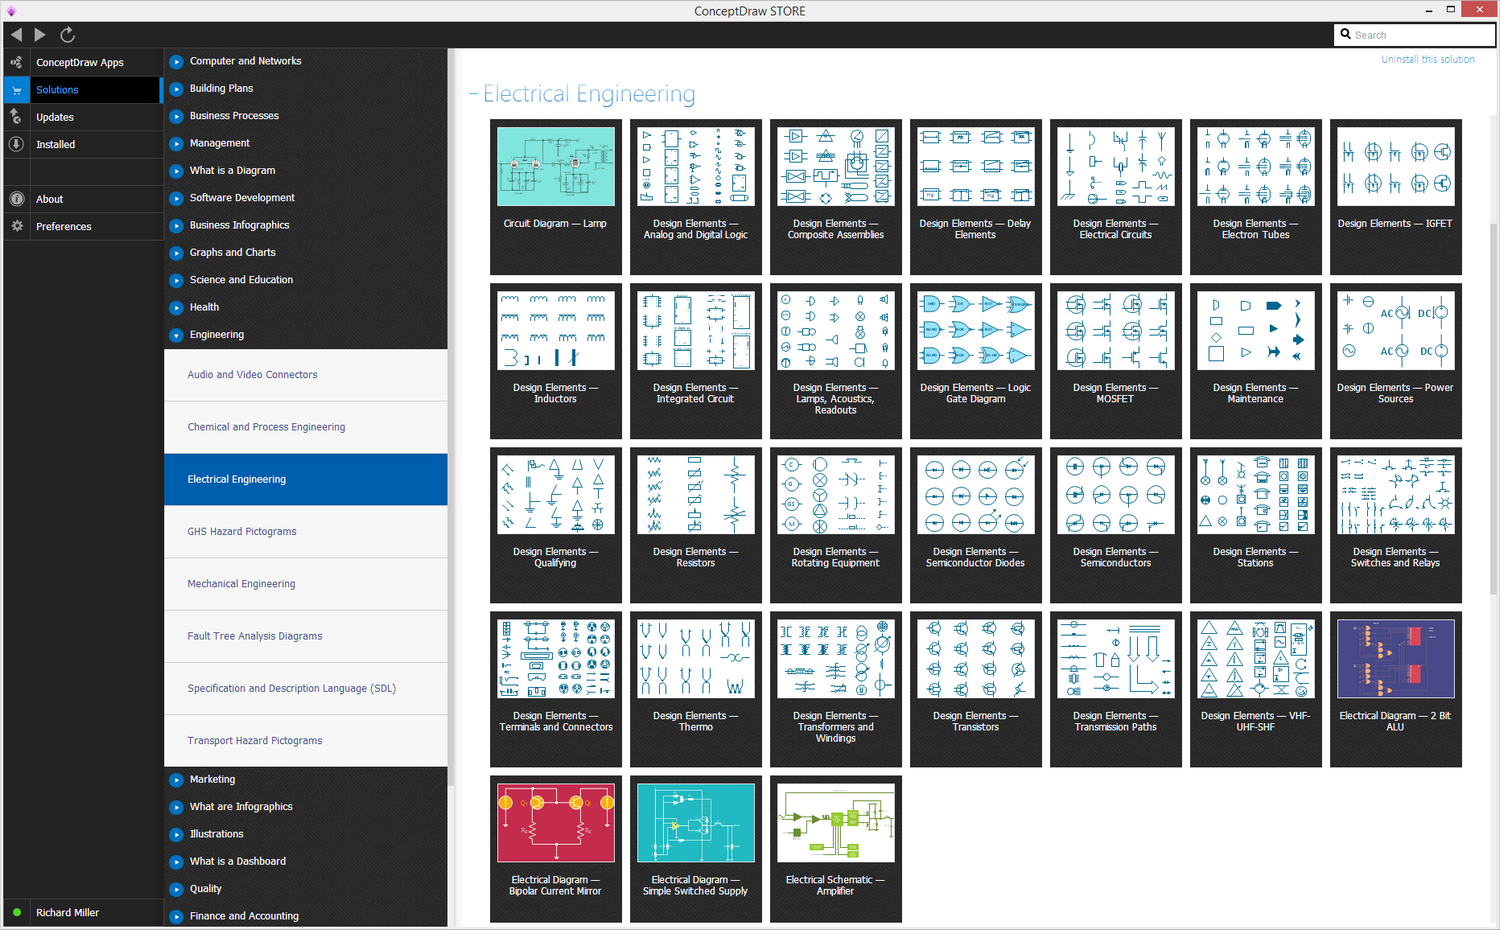 Electrical Engineering Solution in ConceptDraw STORE